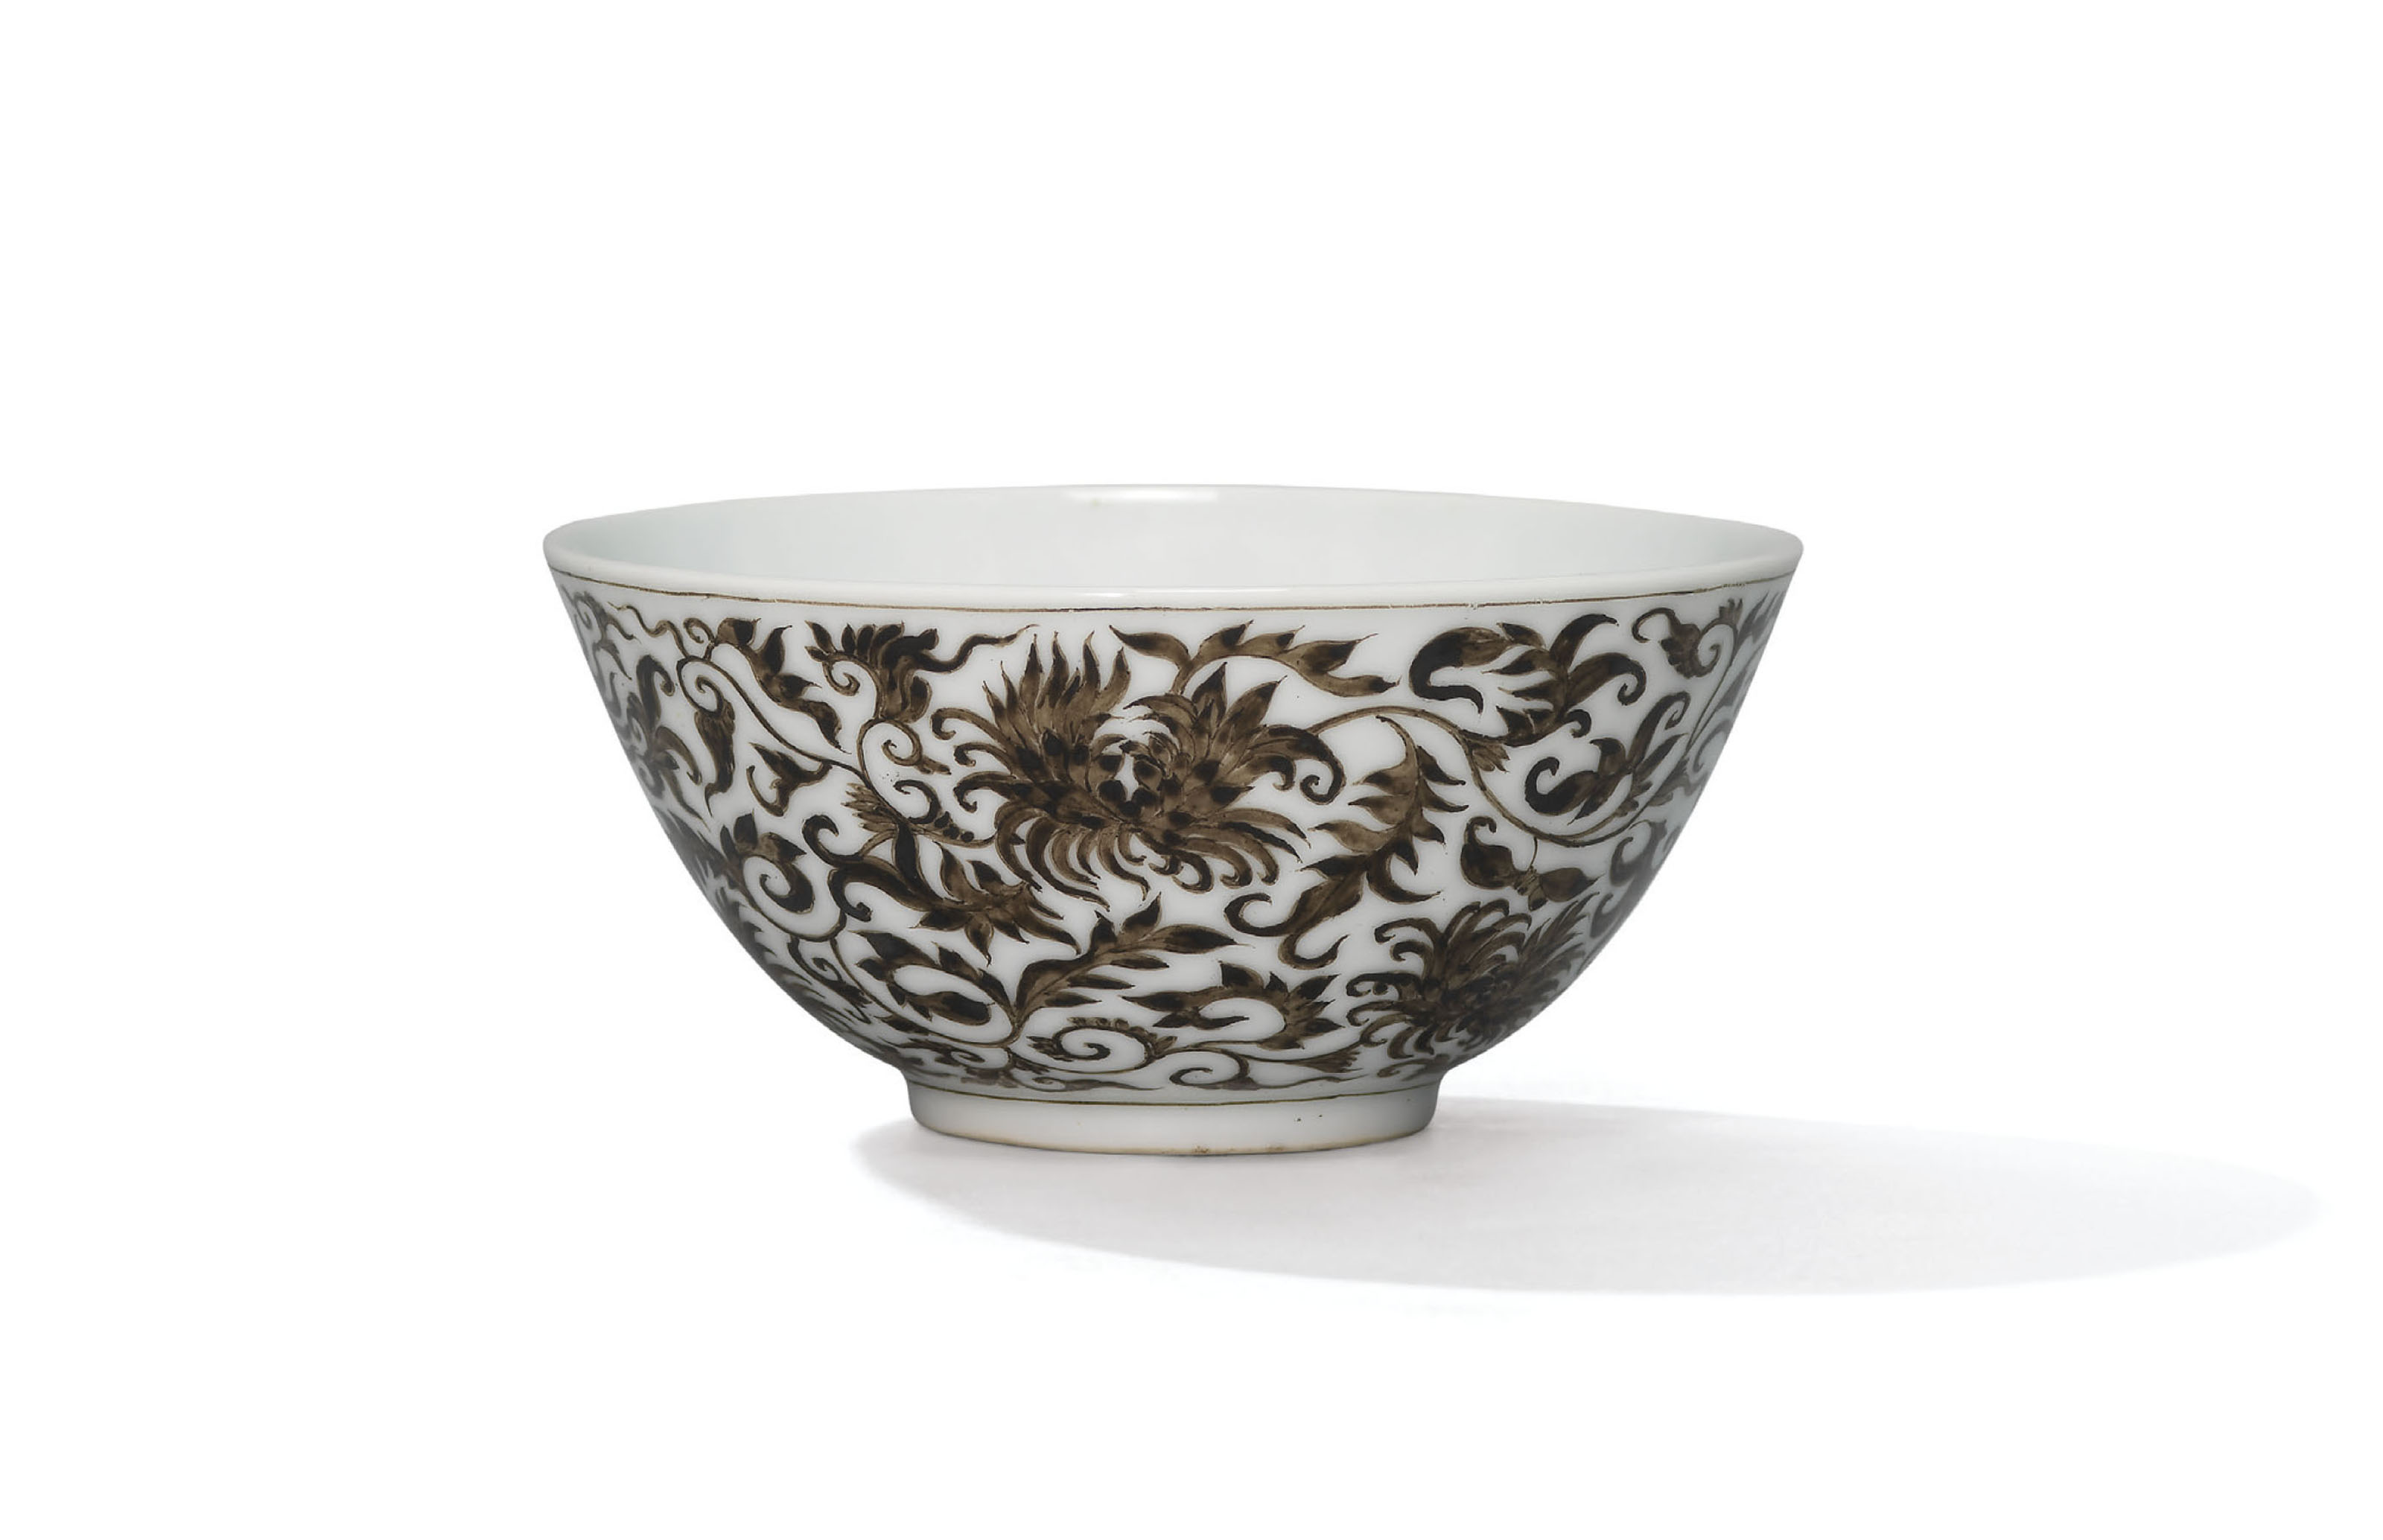 A VERY RARE SMALL GRISAILLE-DECORATED 'CRYSANTHEMUM' CUP